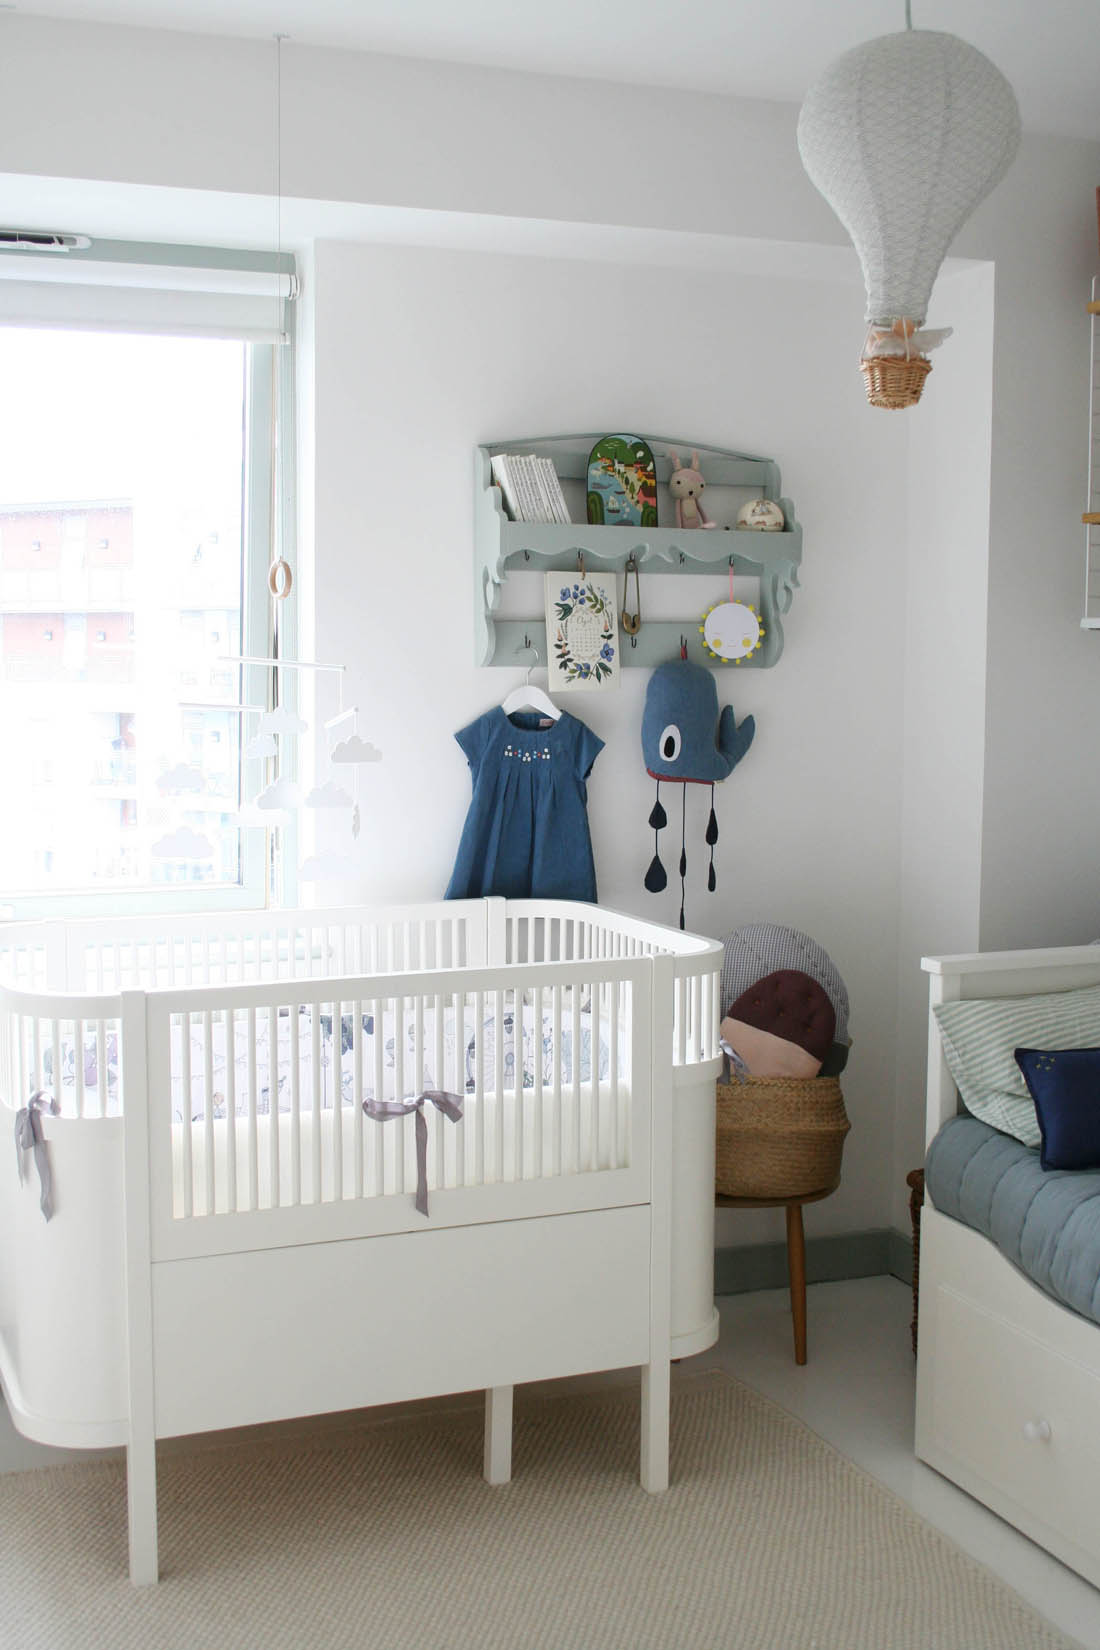 Gender neutral scandal style nursery decor inspiration with Sebra Kili cot bed with Garbo and Friends crib bumper and vintage shelf